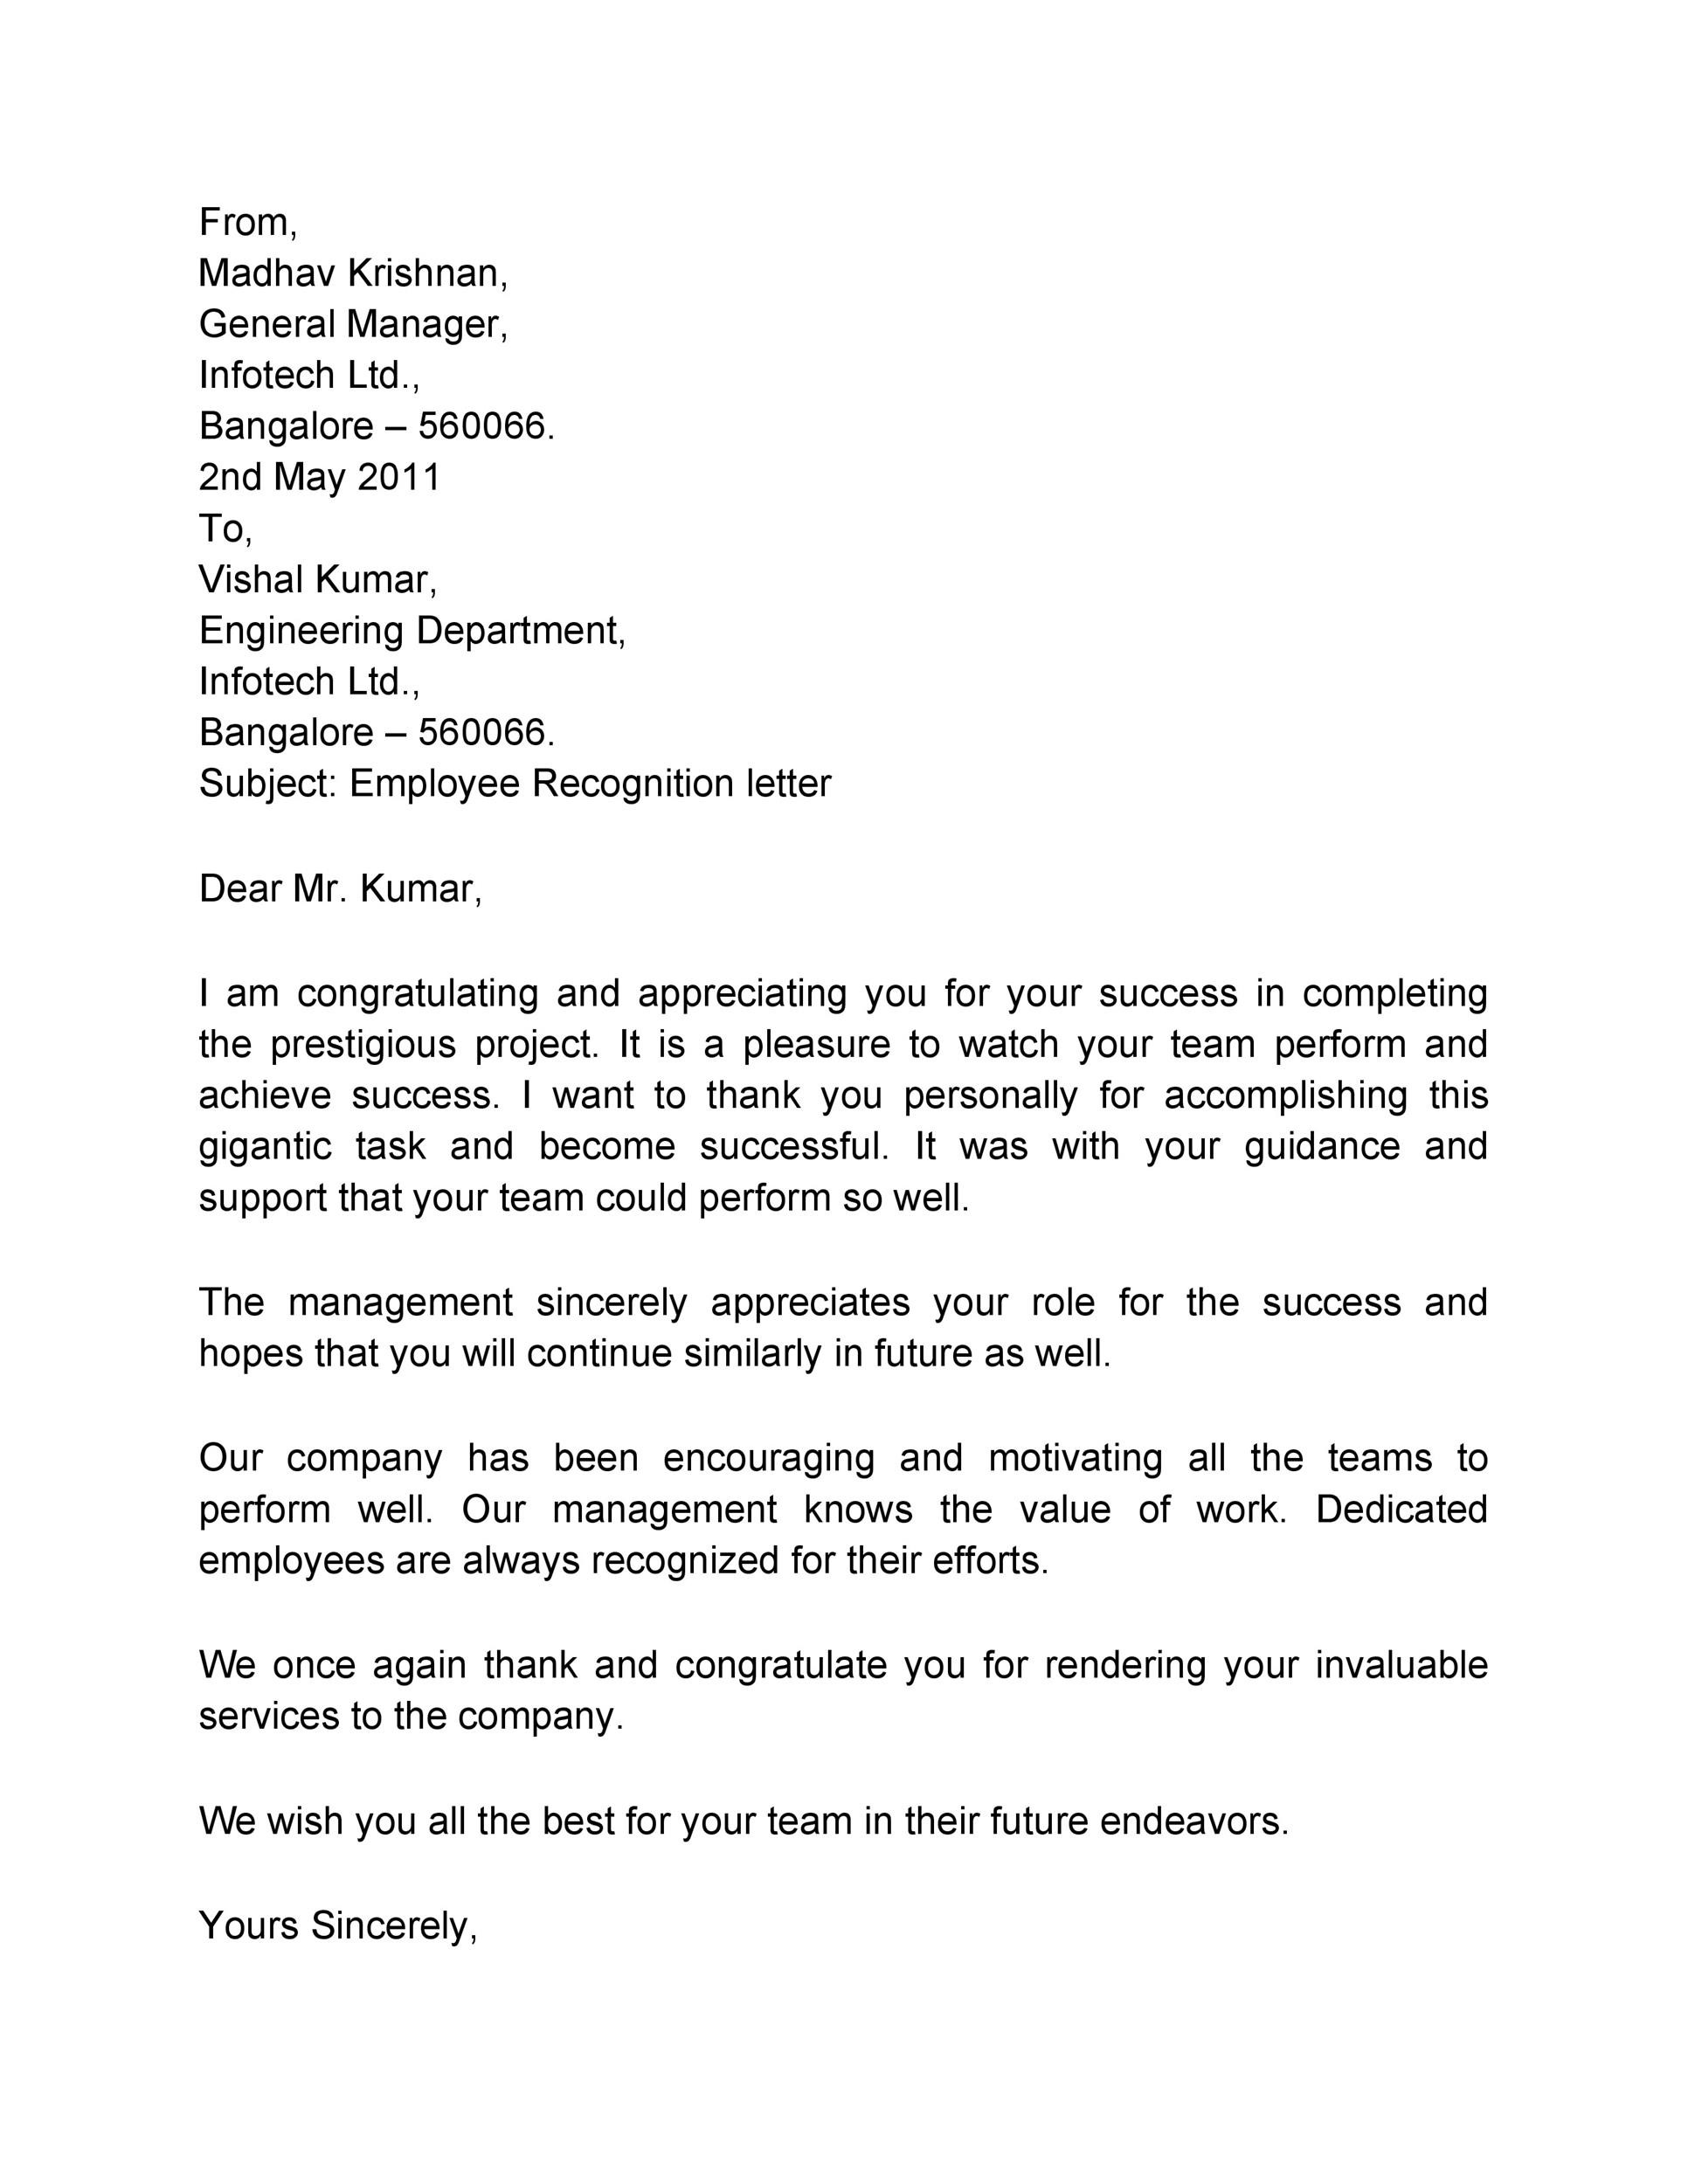 Free recognition letter 39